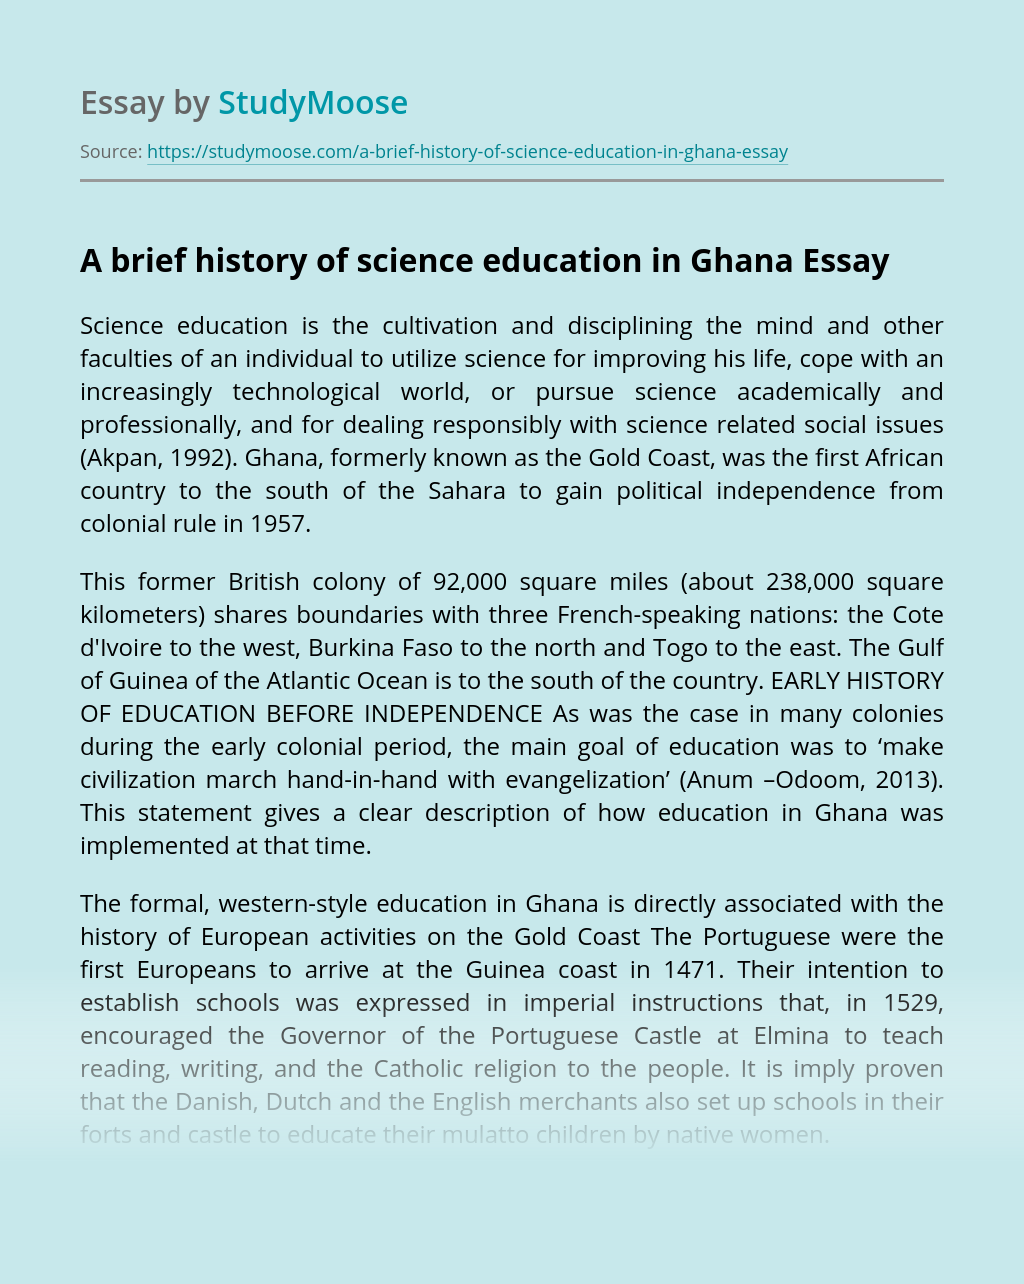 A brief history of science education in Ghana